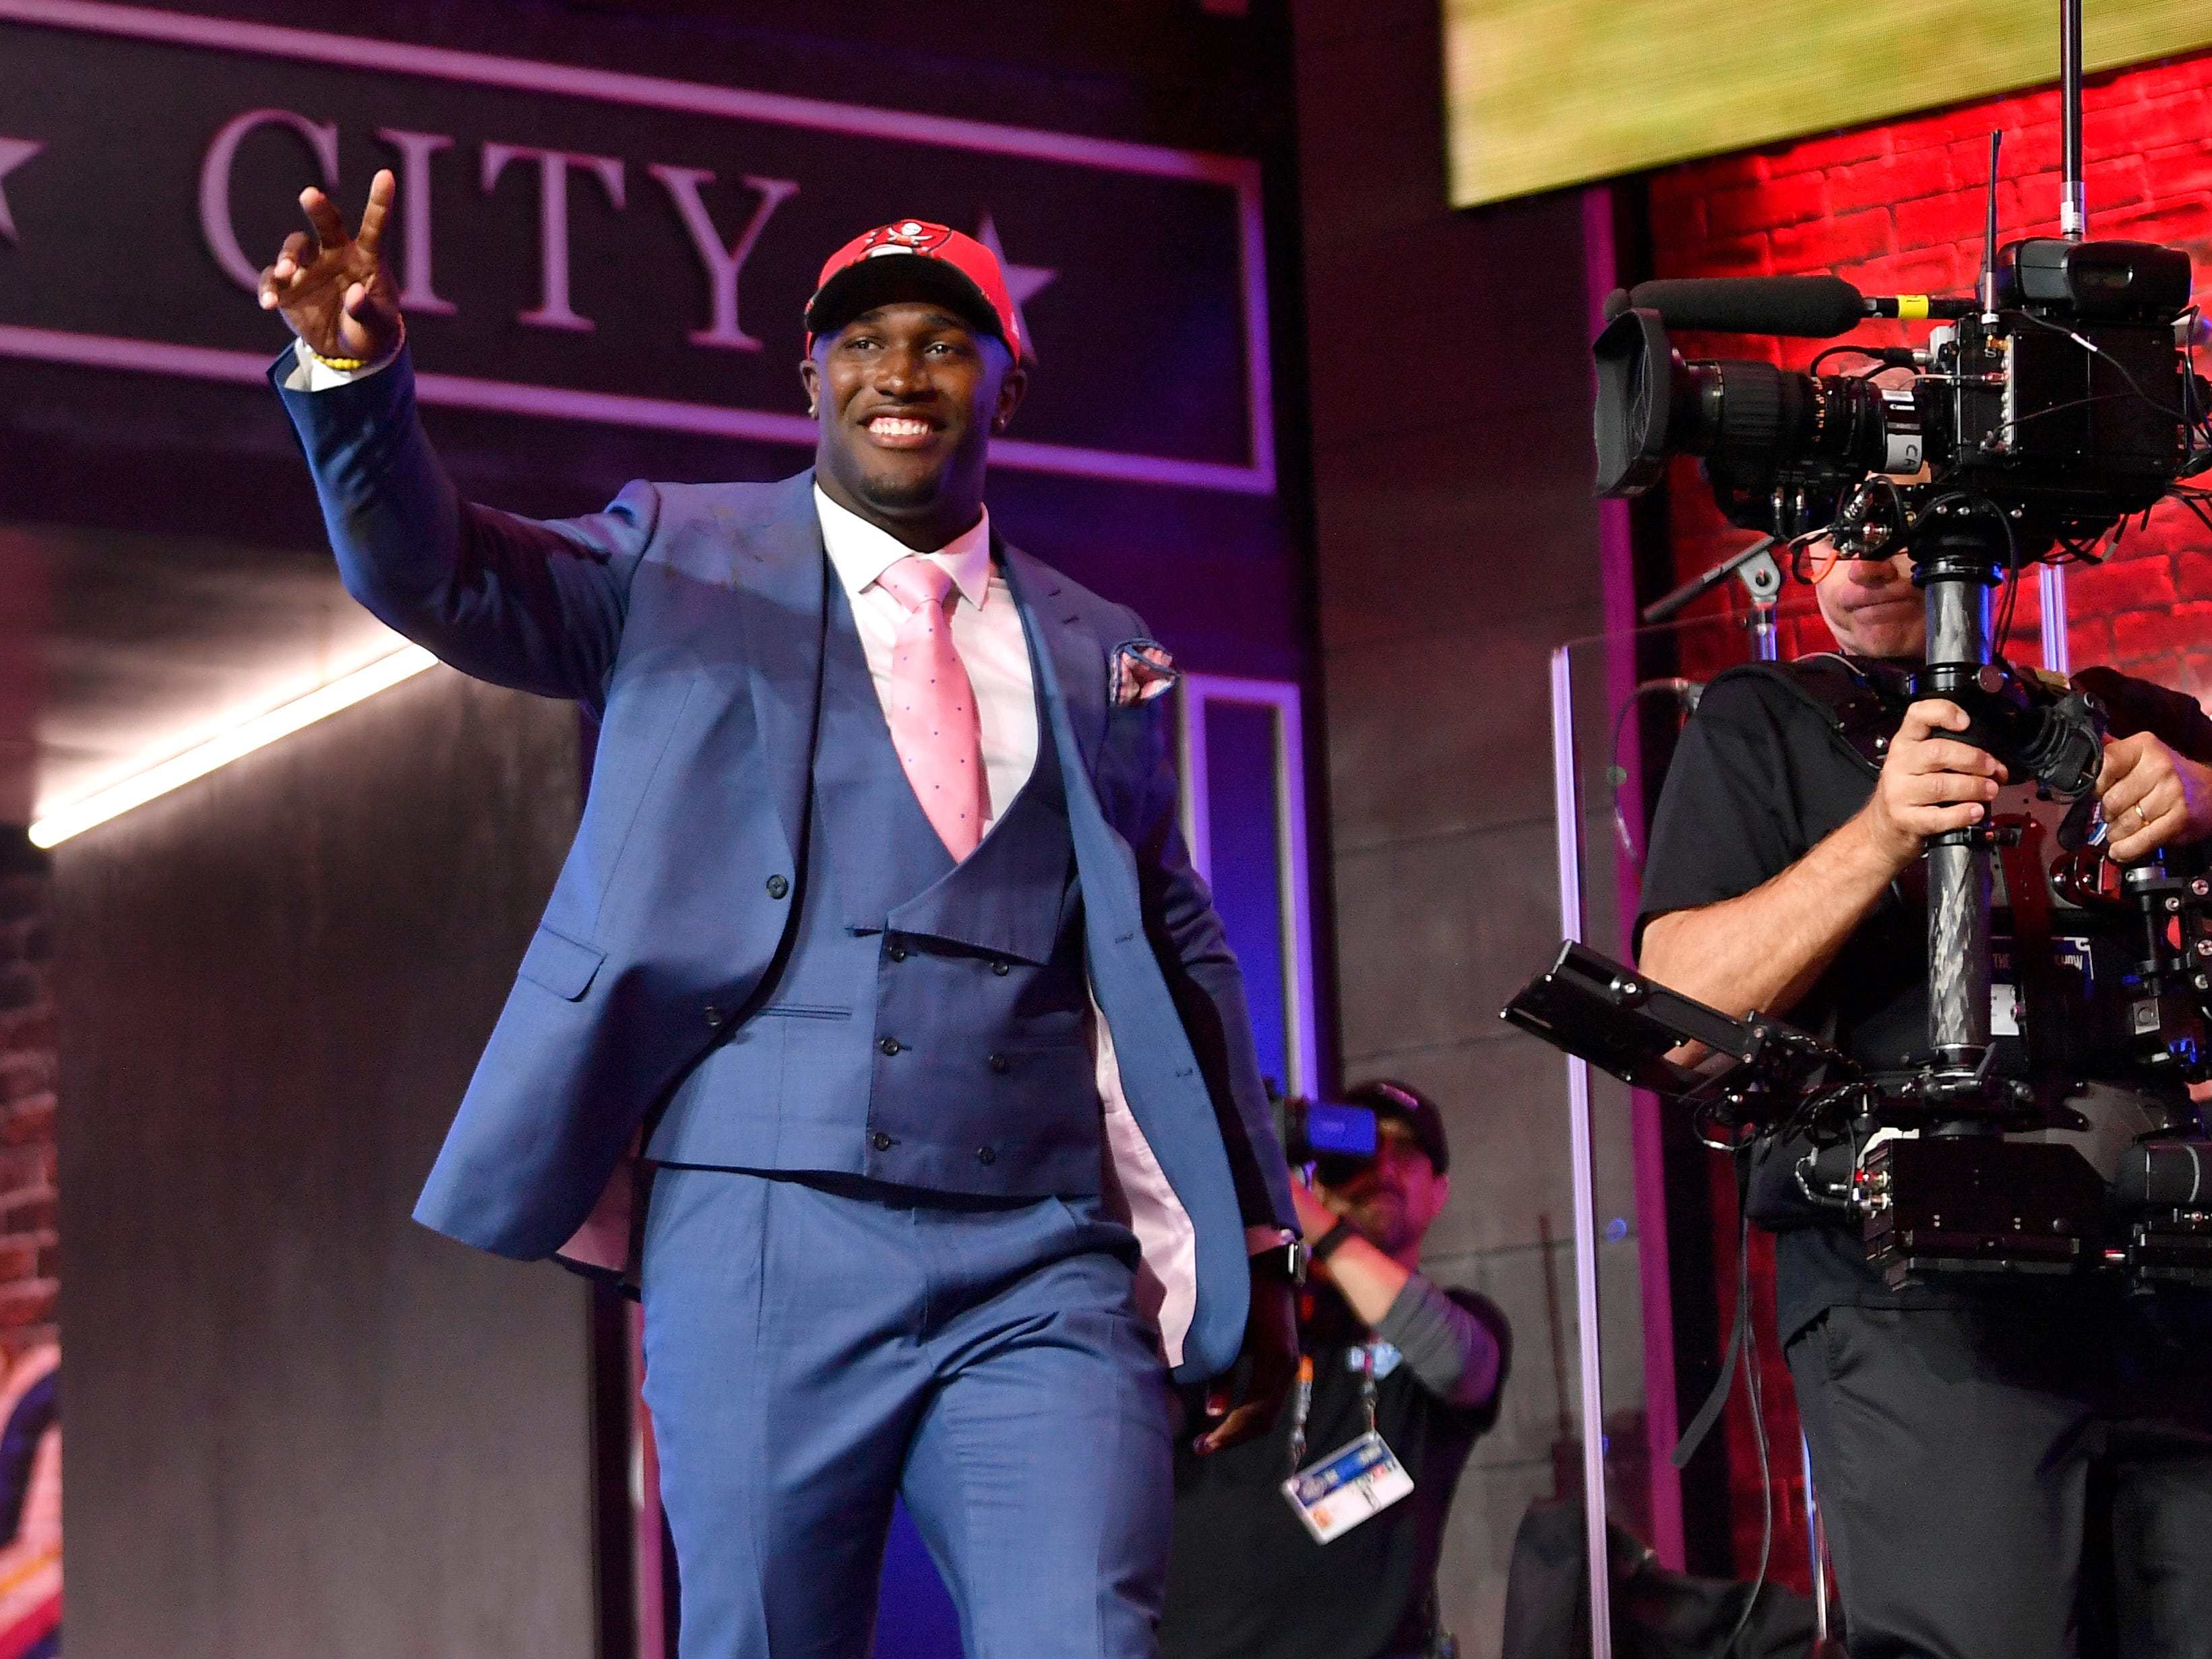 Devin White walks onto the stage after being picked by the Tampa Bay Buccaneers during the first round of the NFL Draft Thursday, April 25, 2019, in Nashville, Tenn.